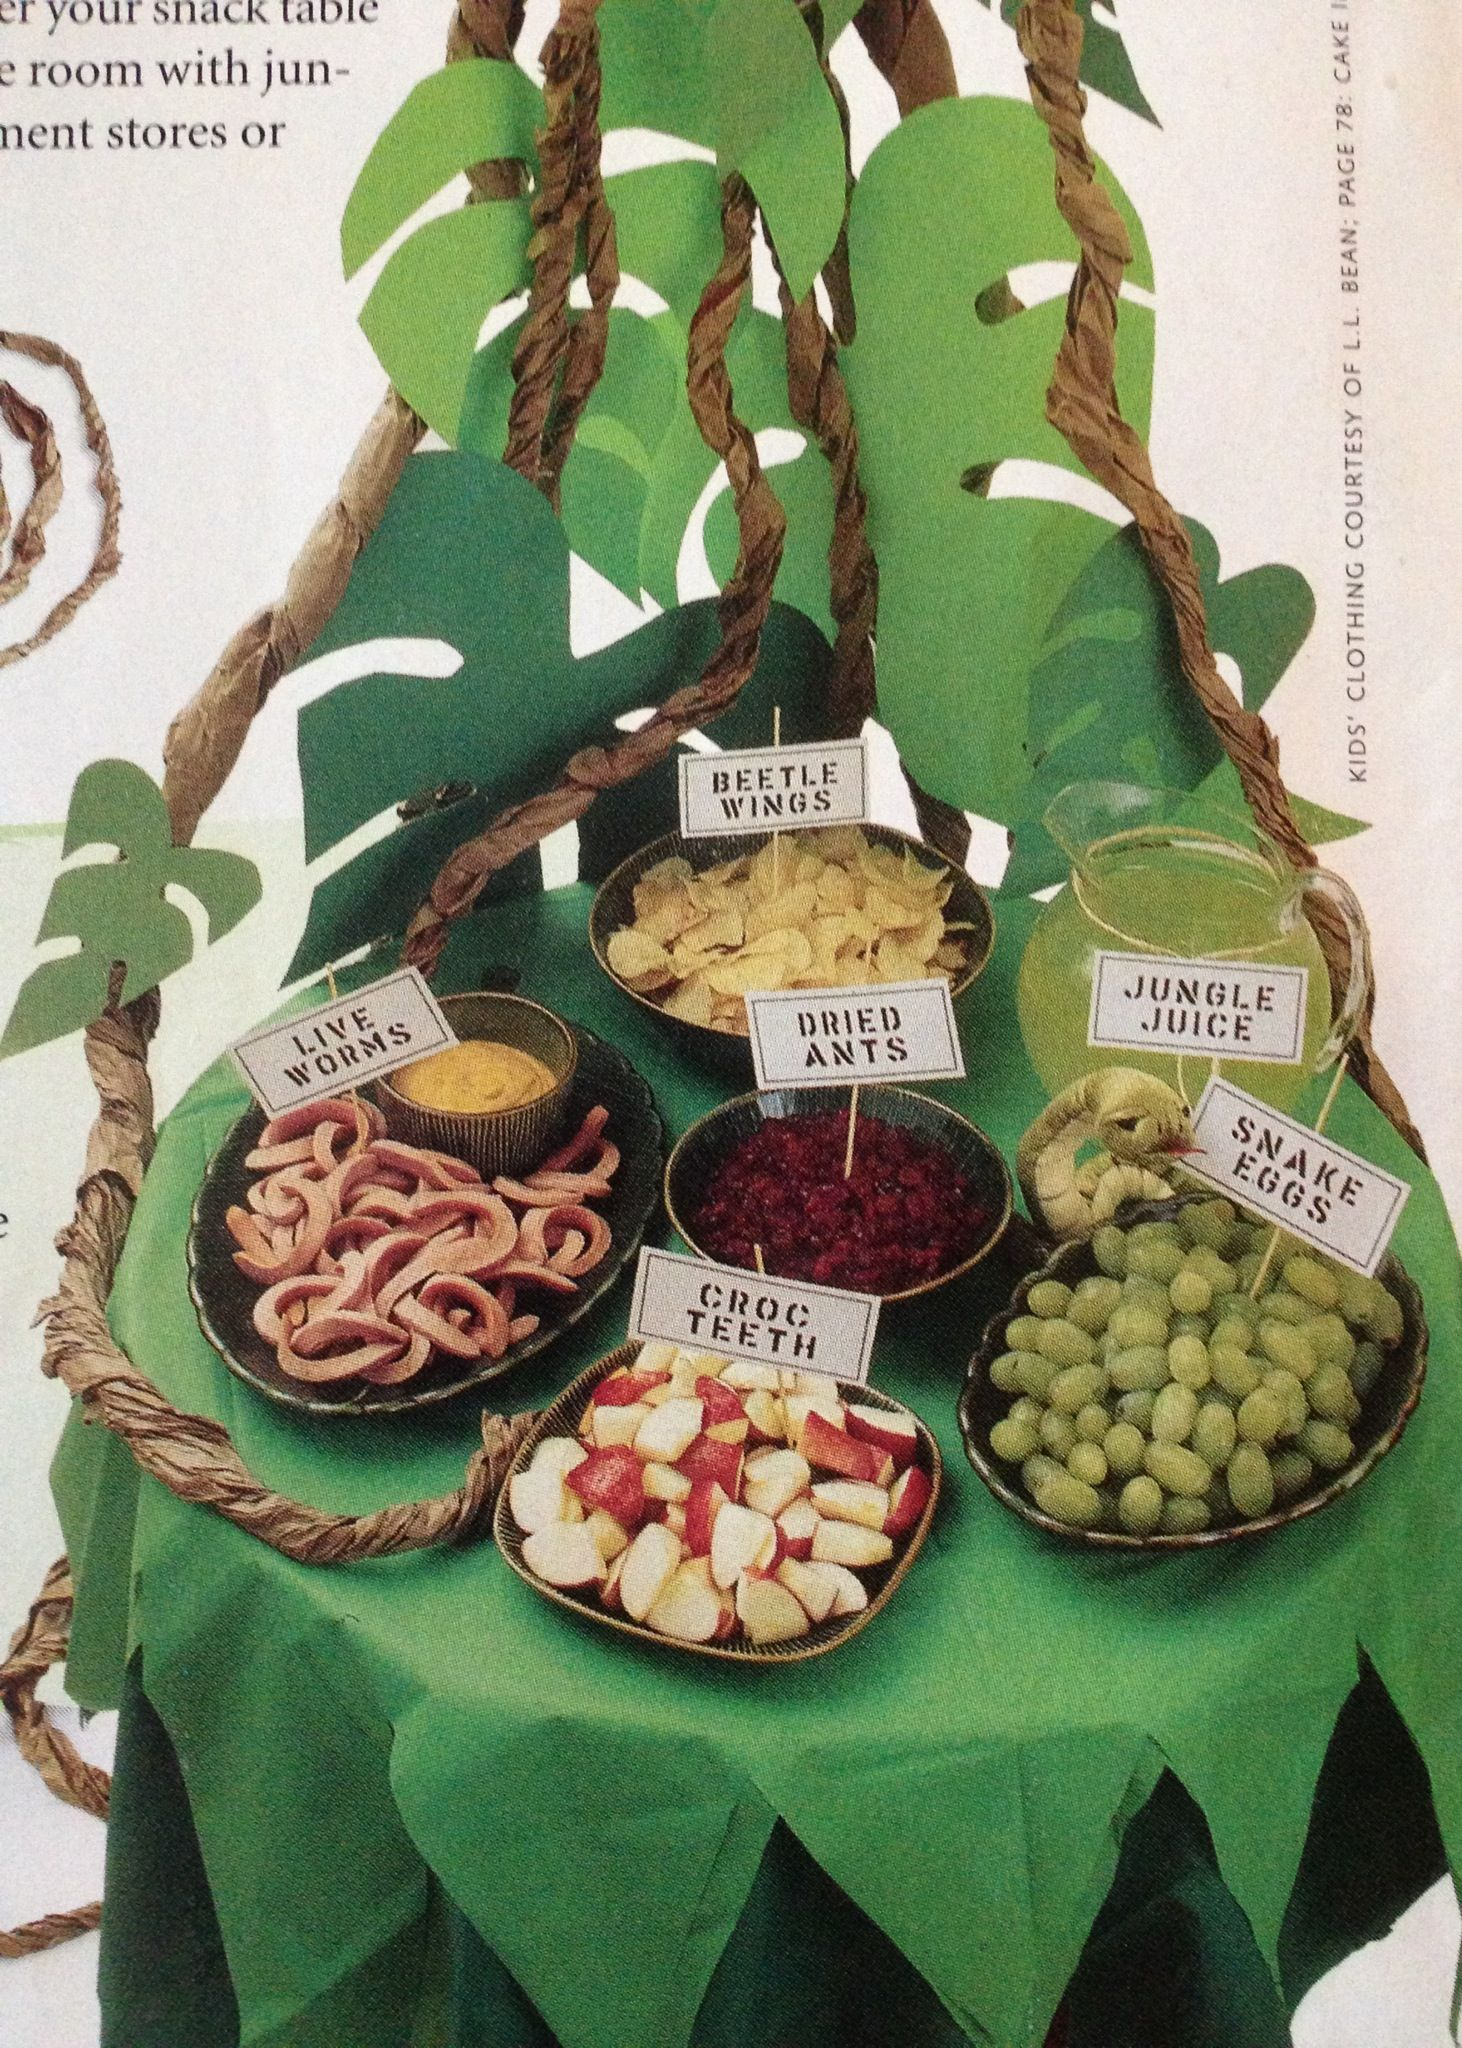 African safari jungle birthday party kara 39 s party ideas the place for all things party - African american party ideas ...